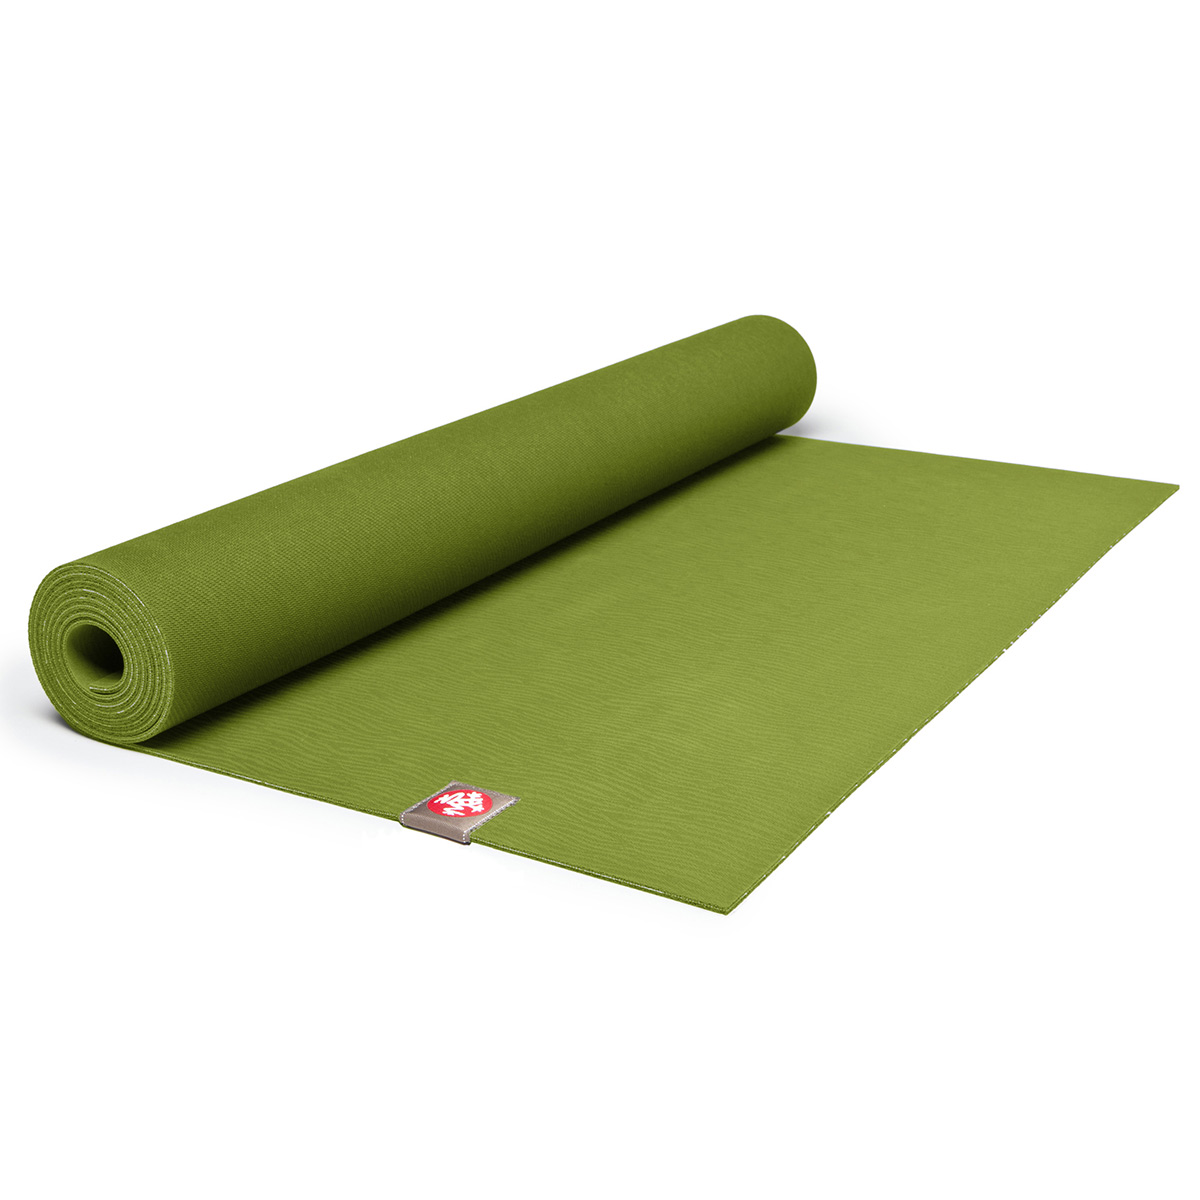 Manduka Eko Lite Yoga Mat Yoga Apparel Amp Mats At Vickerey